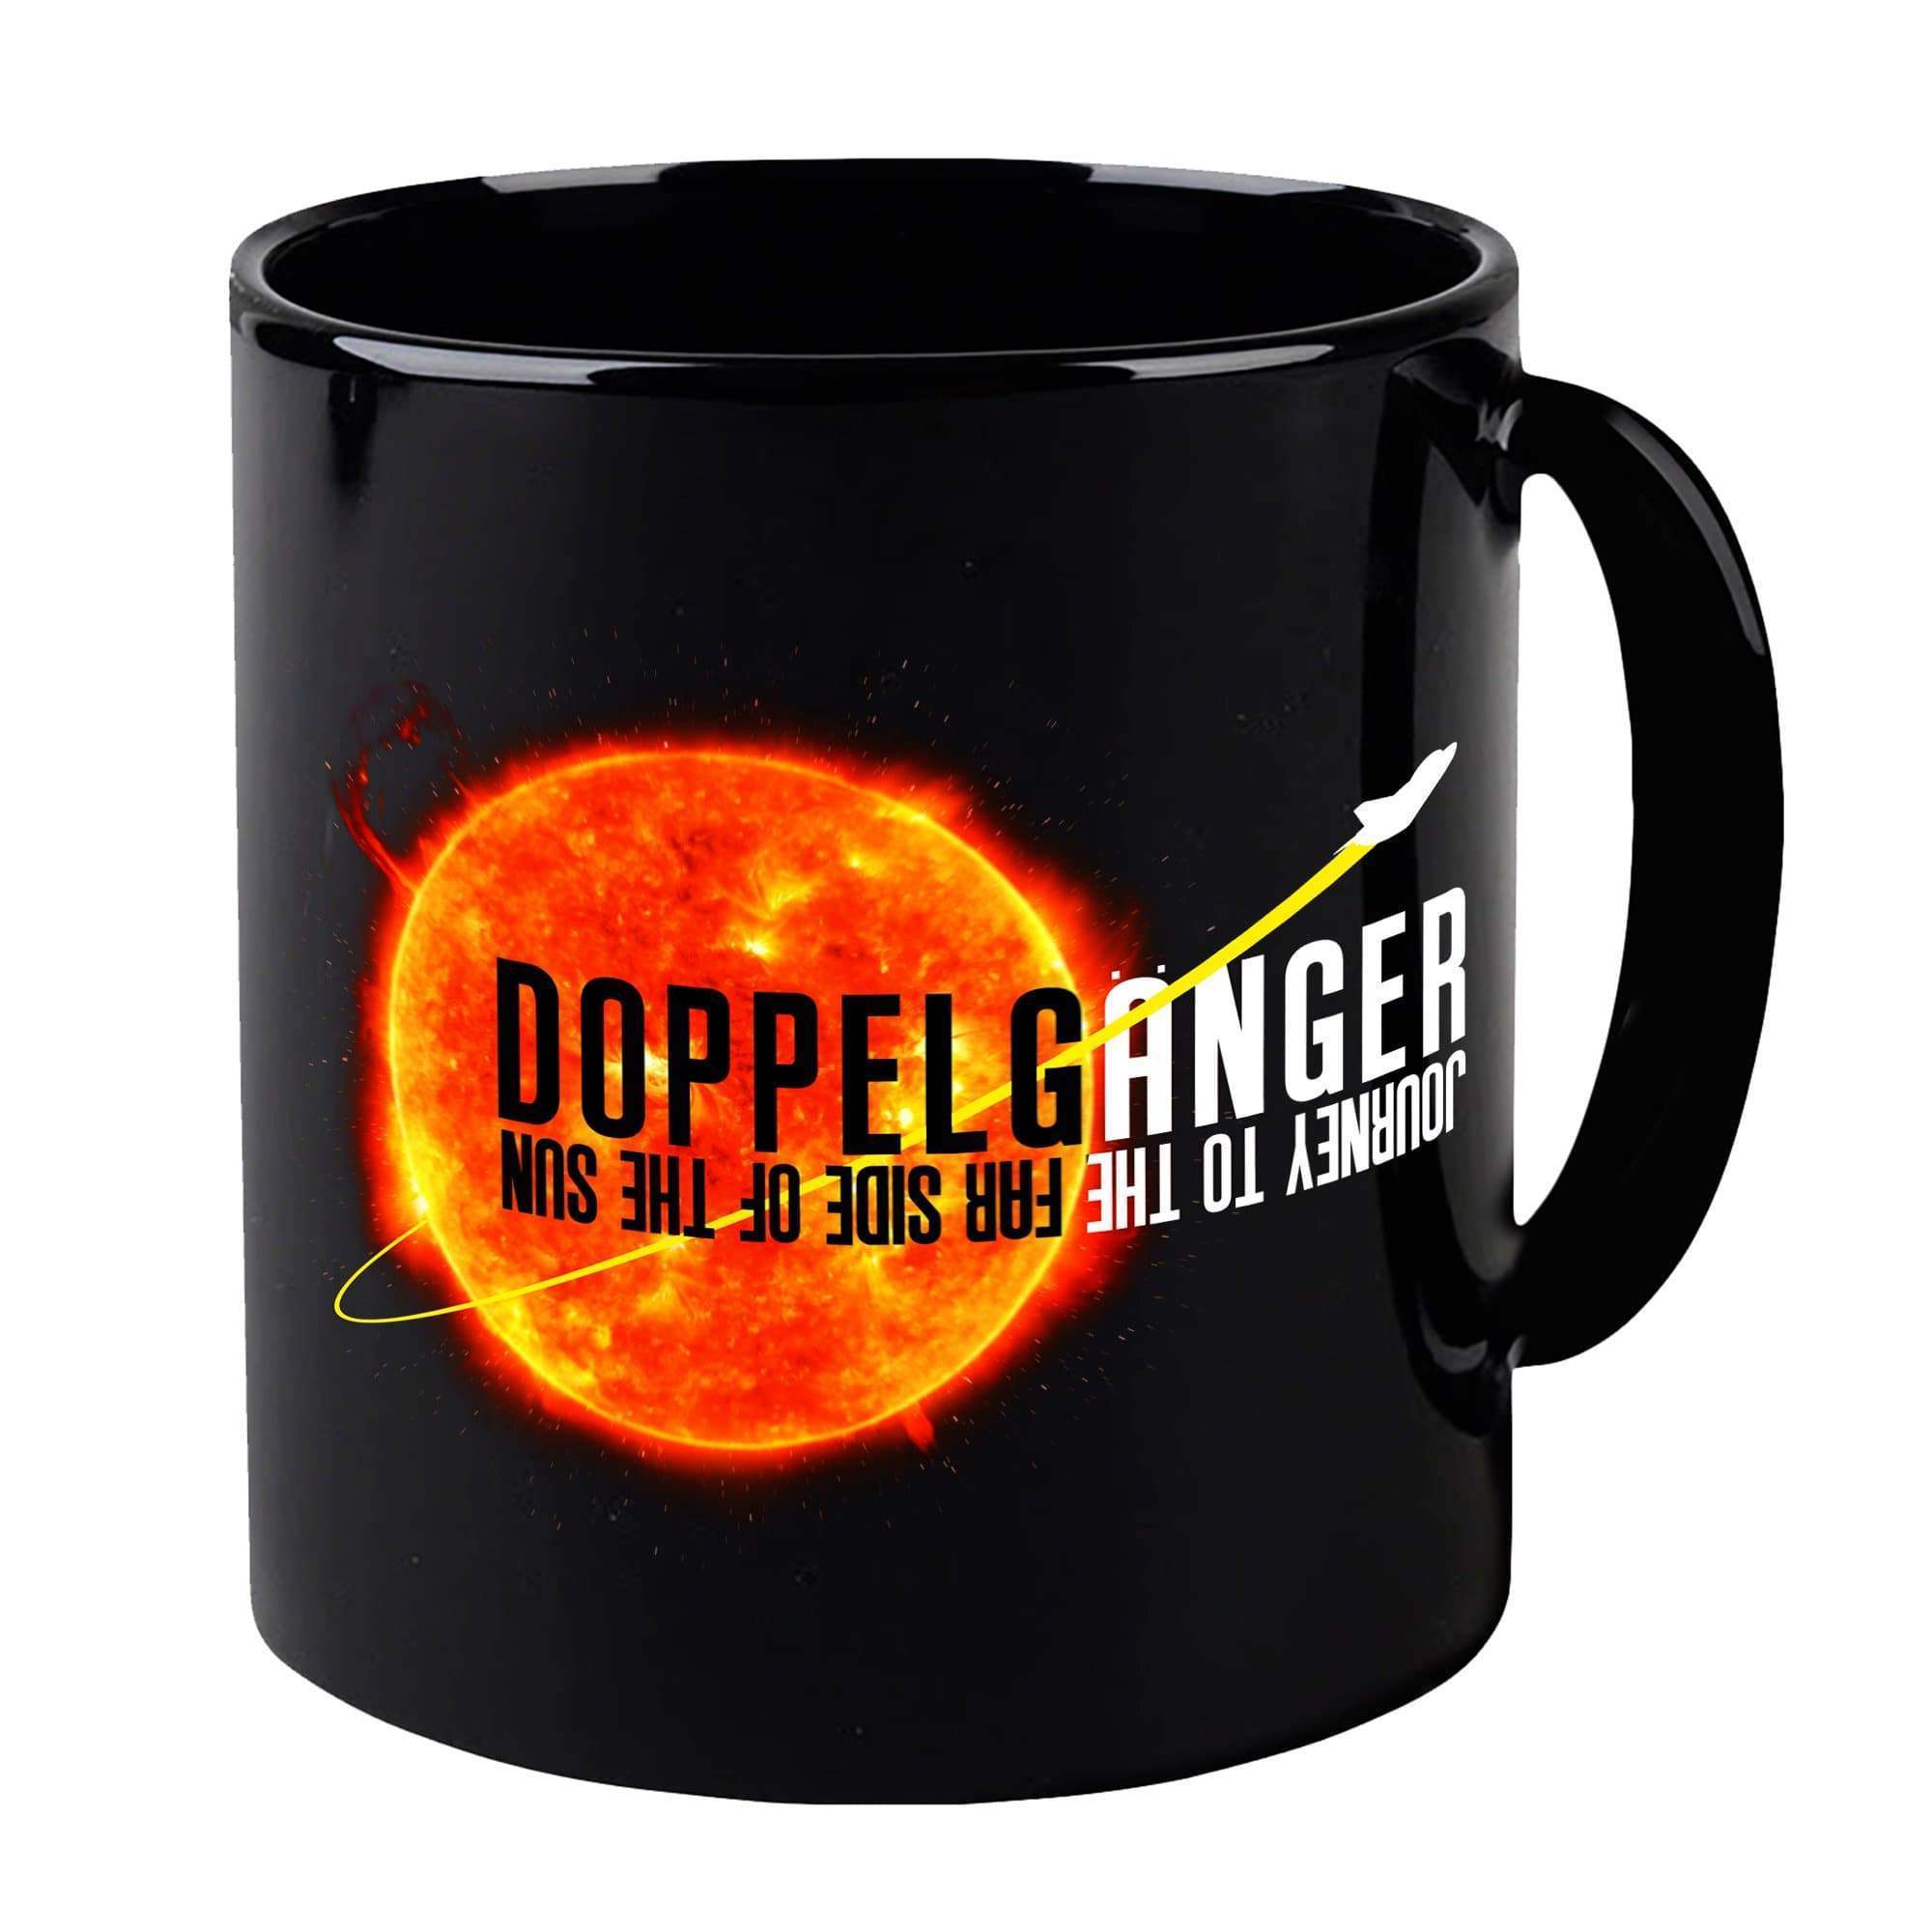 Doppelgänger Logo Mug [Official & Exclusive] - The Gerry Anderson Store